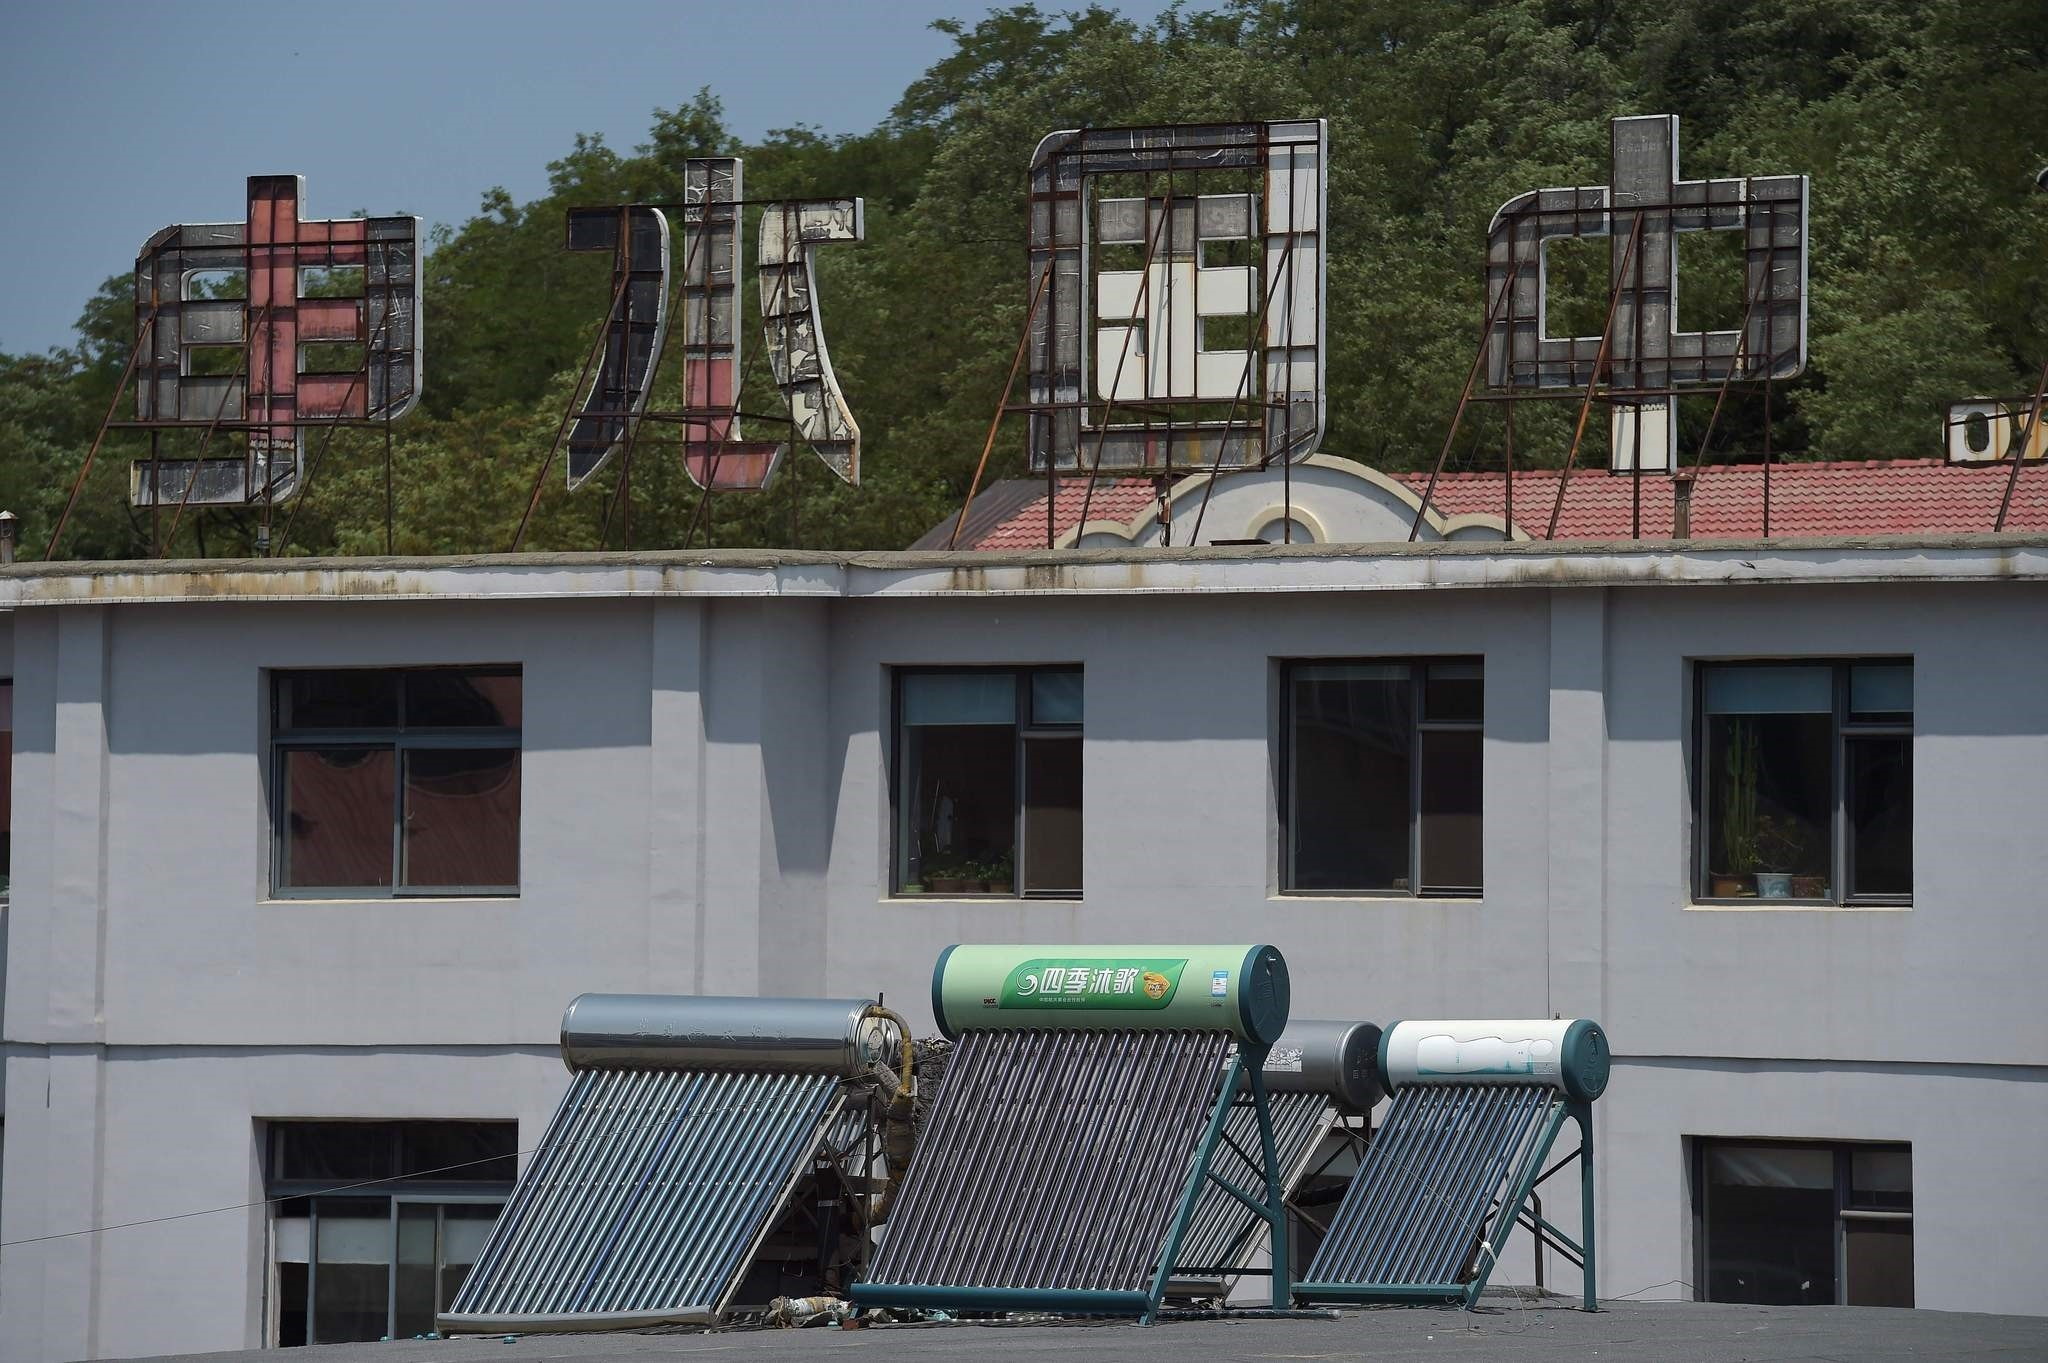 Solar panels are seen on the roof of a building in Dandong.